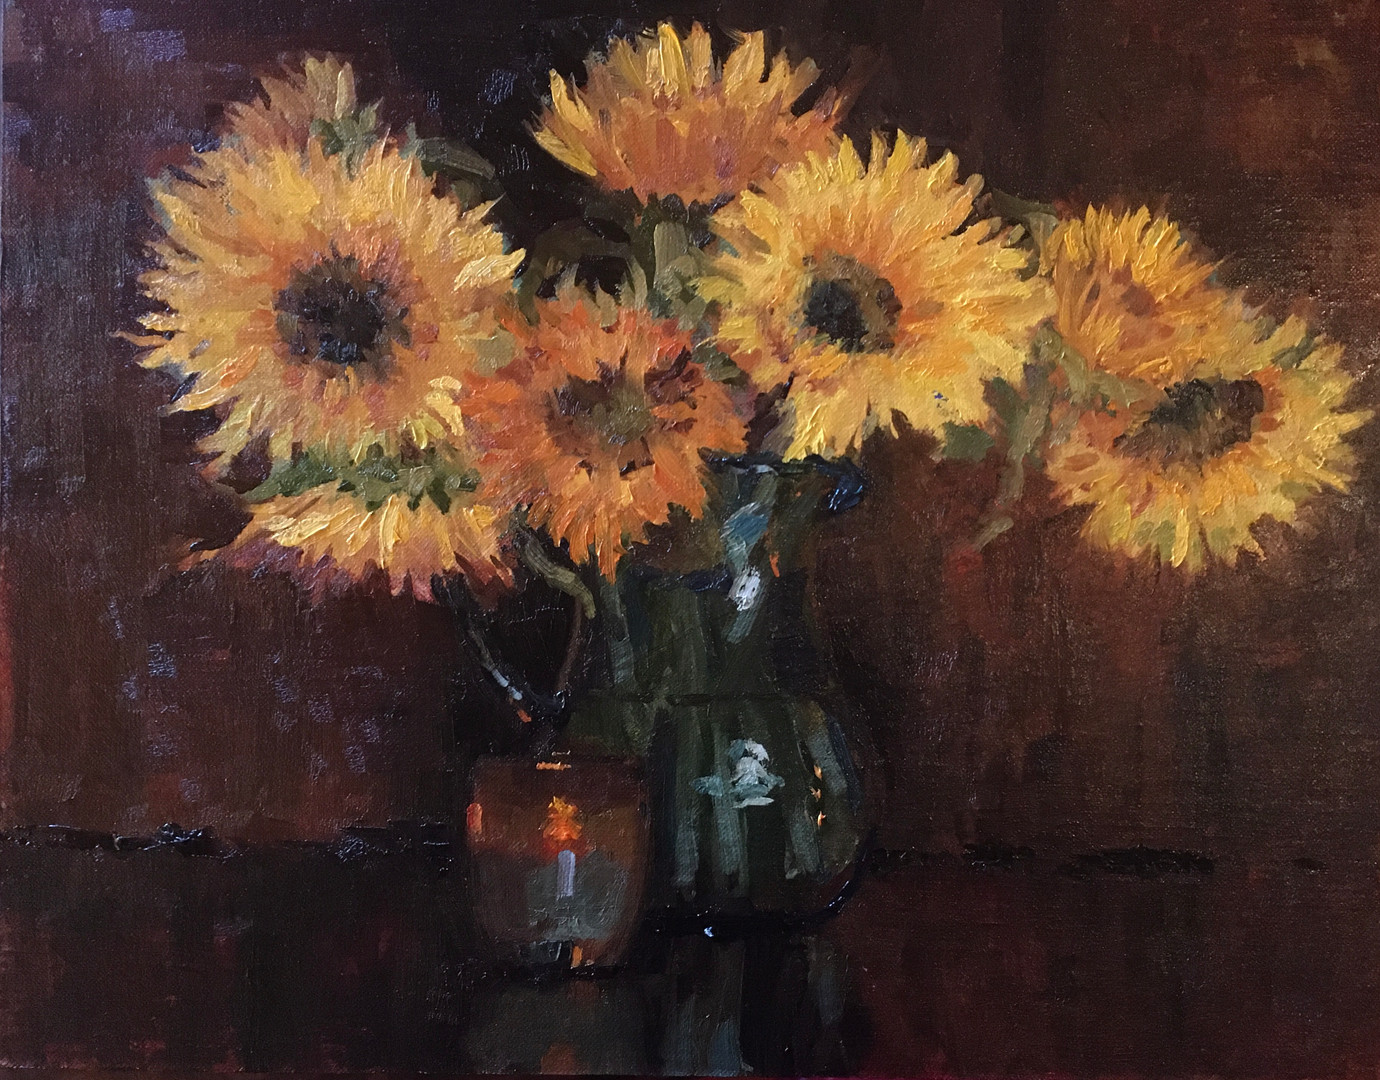 Sunflowers in Turquoise Vase